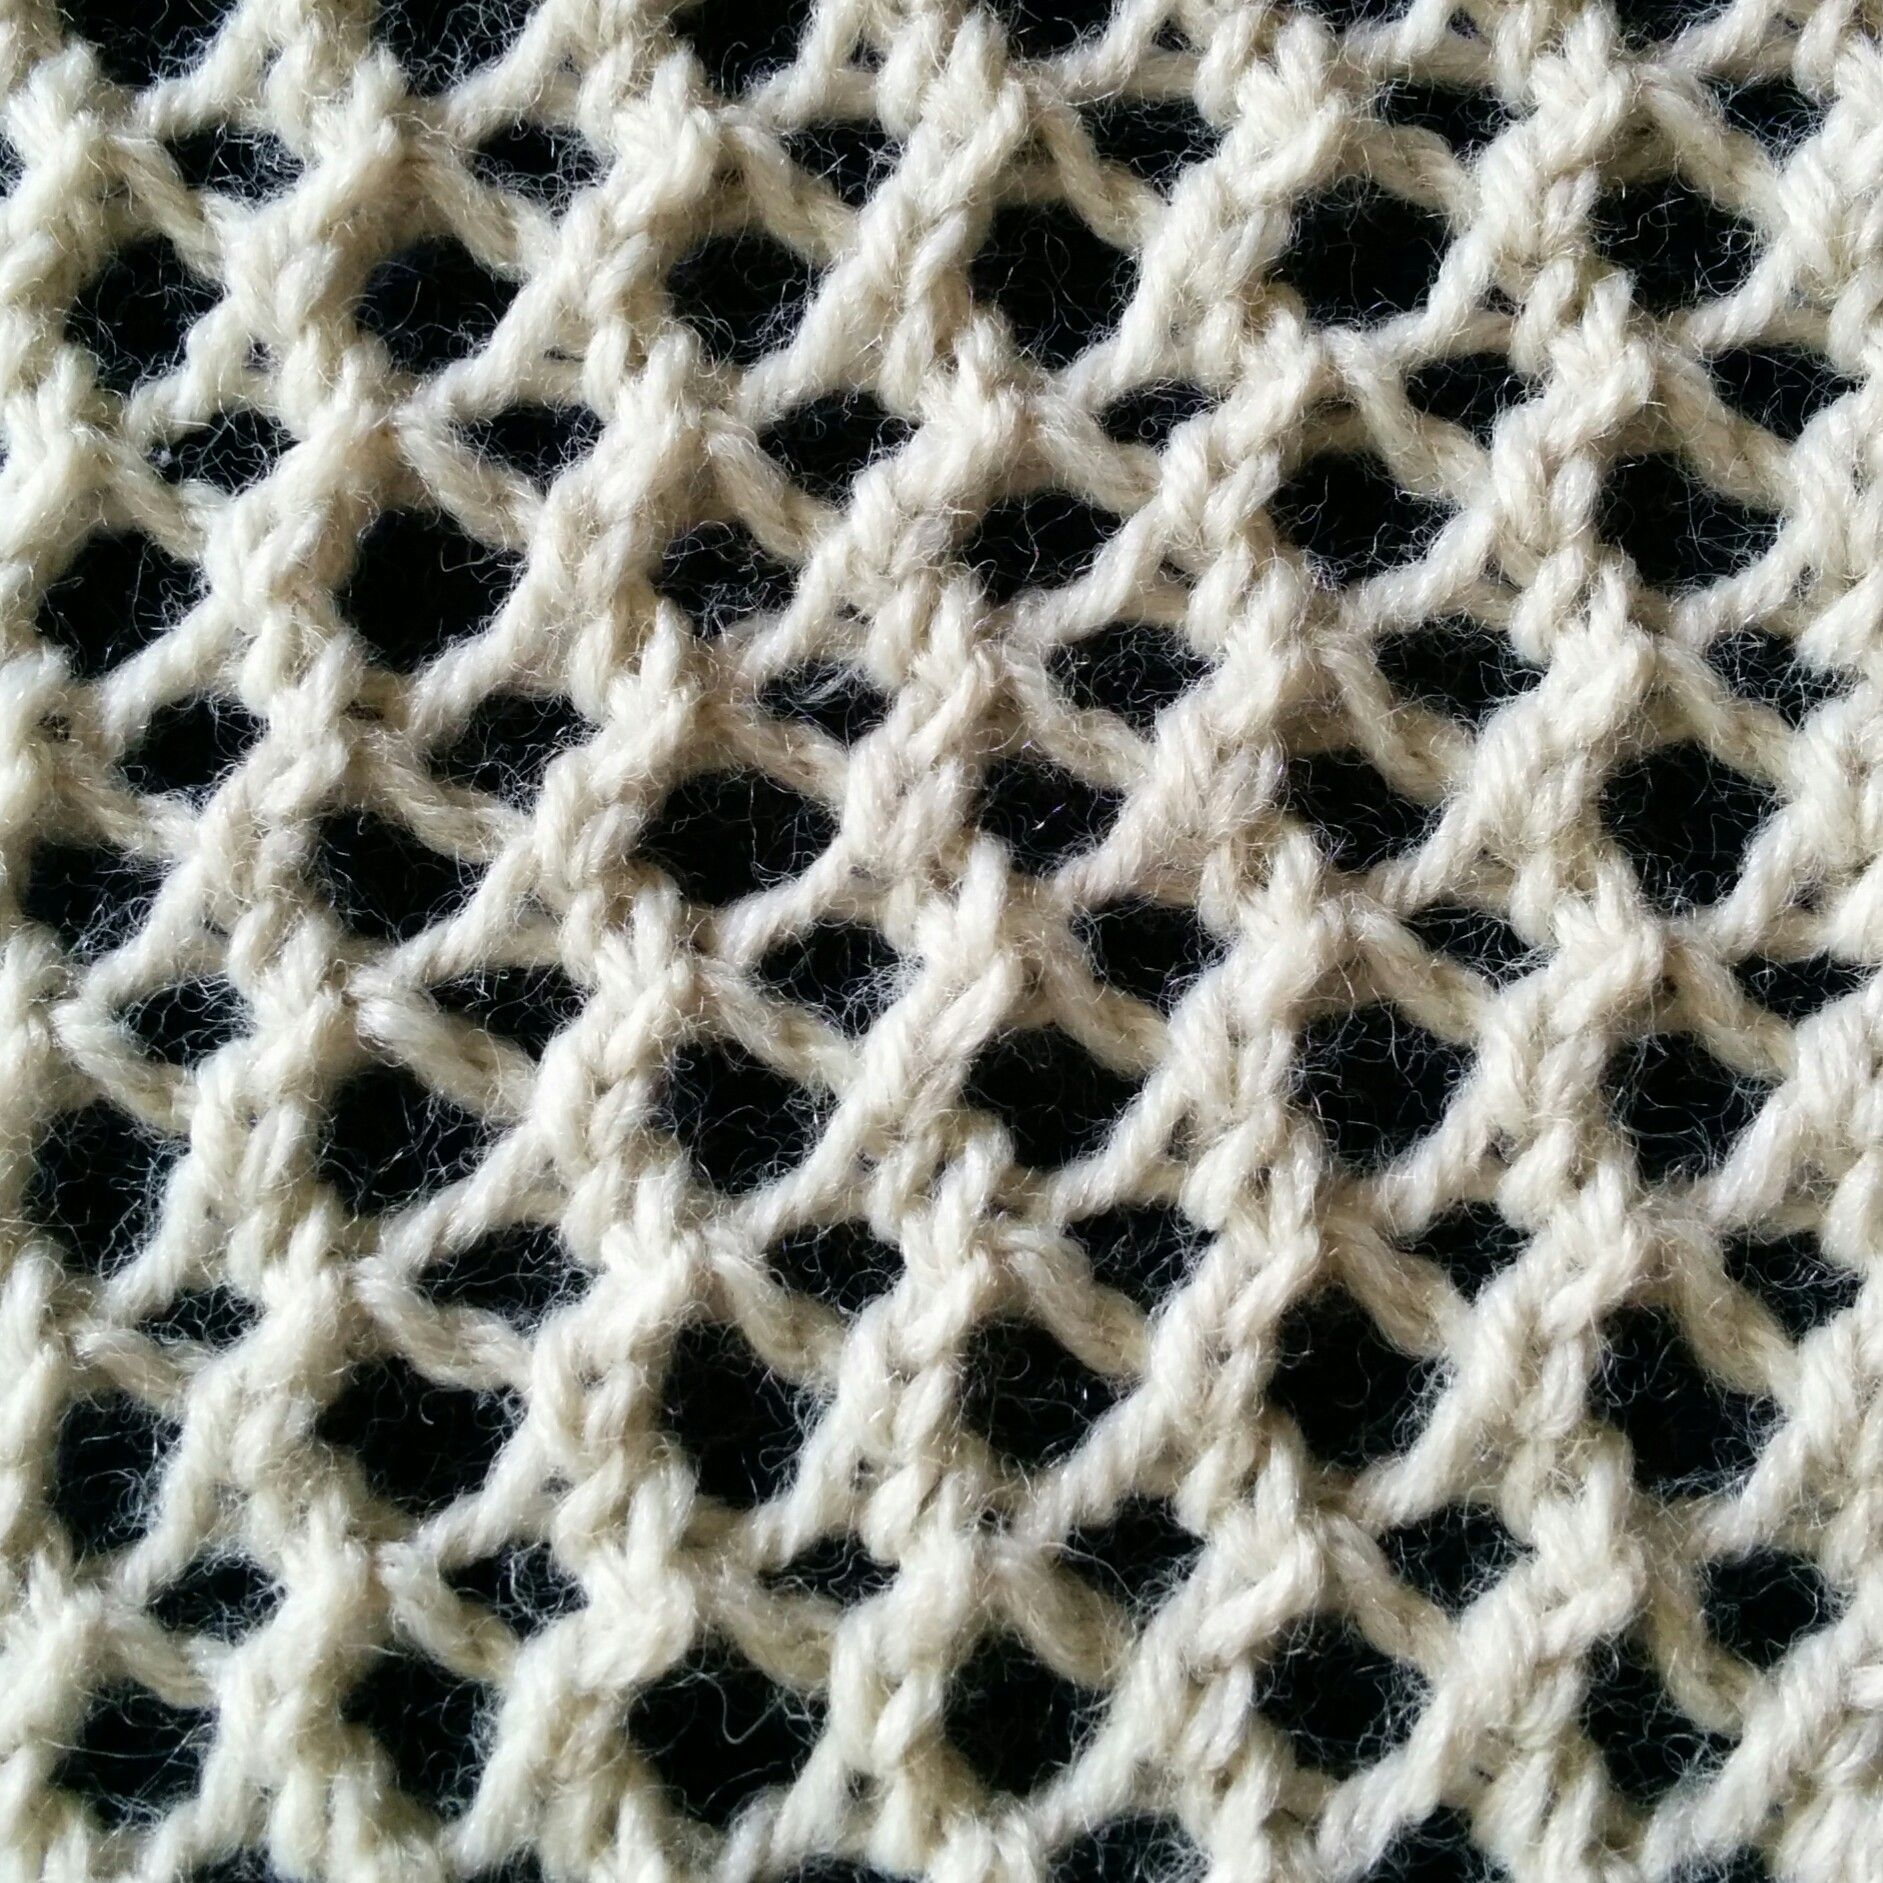 The Mesh Lace stitch is a simple lace stitch that is very easy to ...